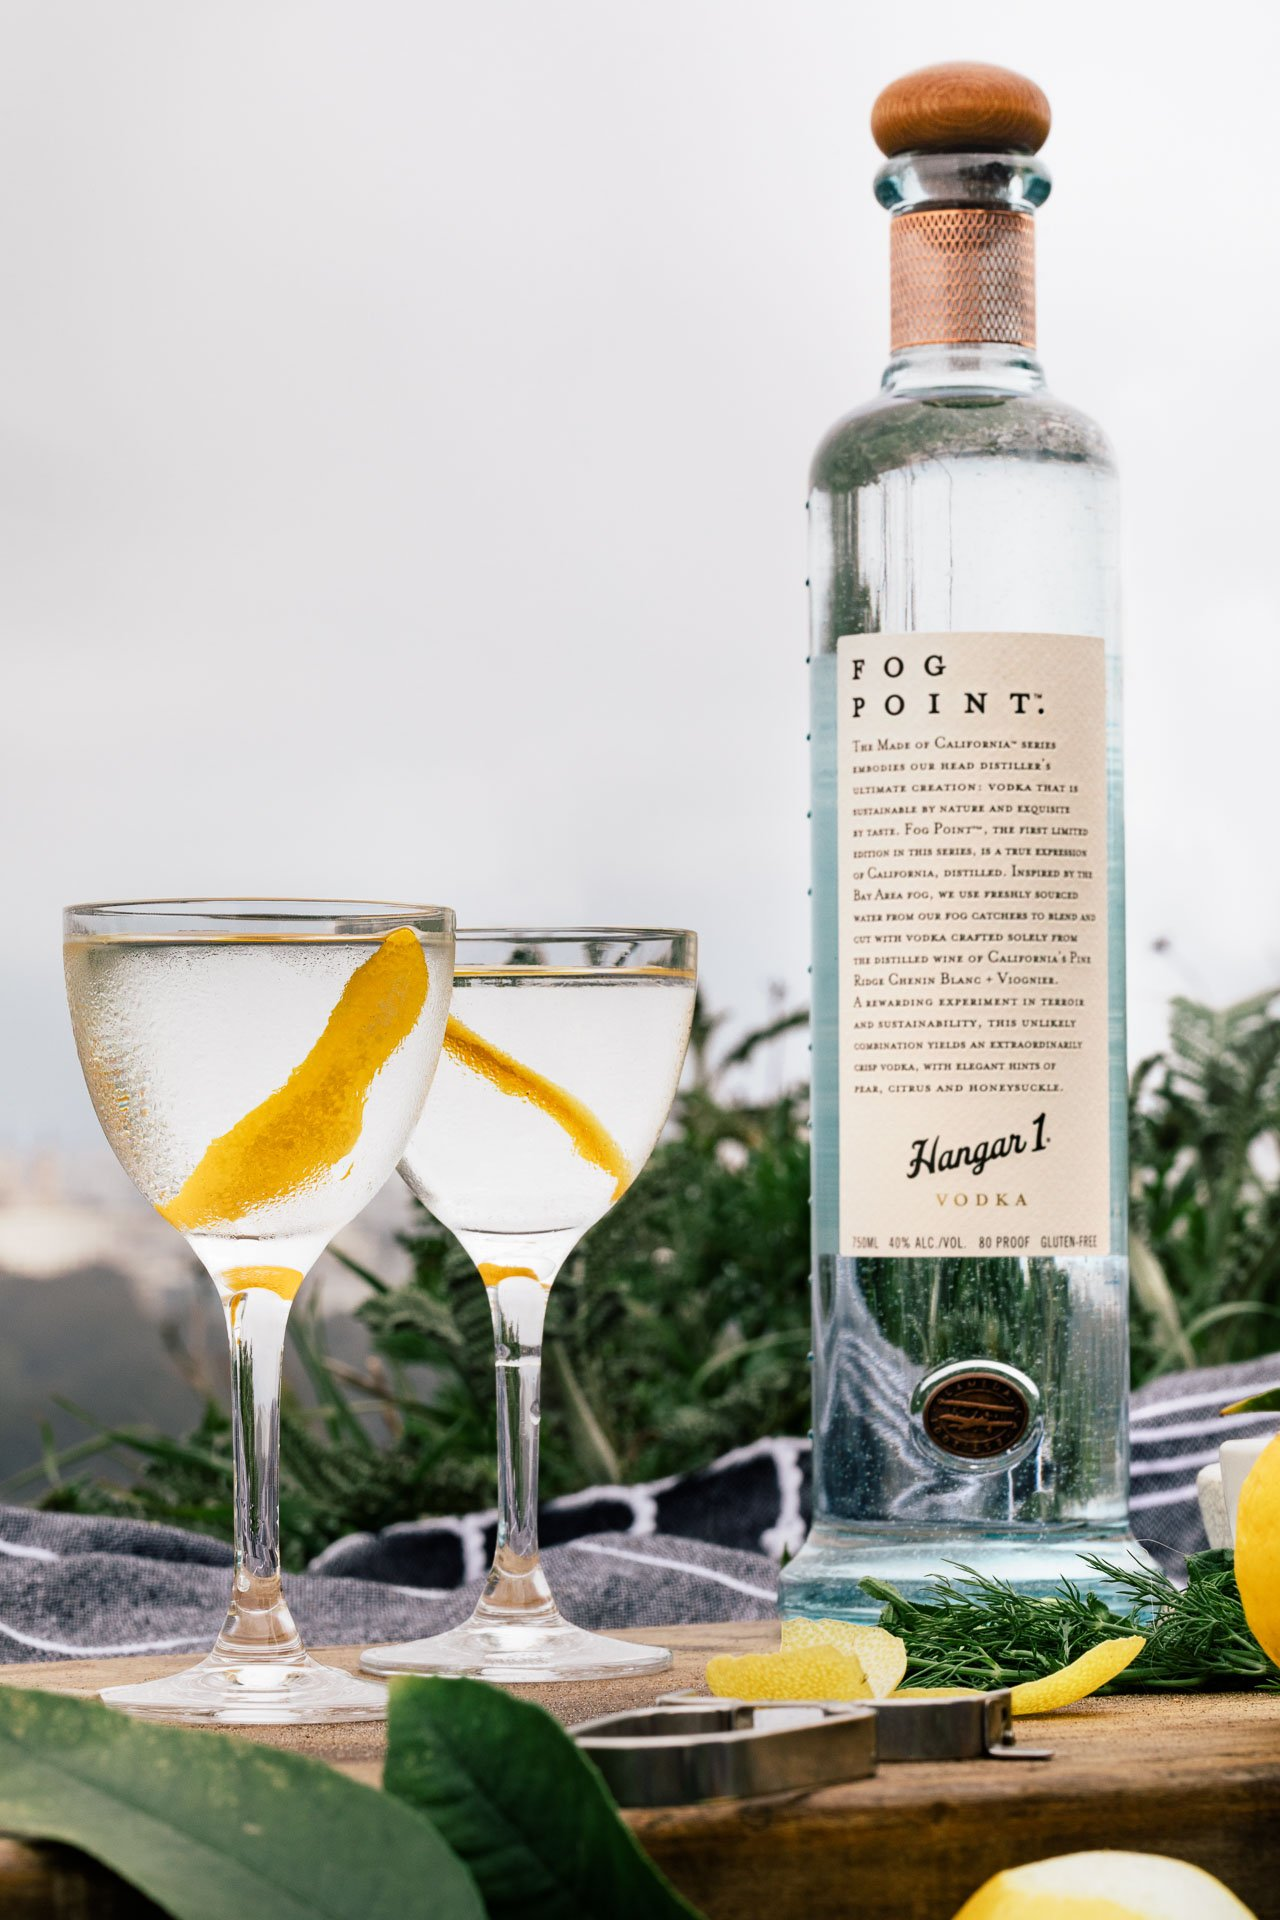 Fog Point Vodka Martini | HonestlyYUM (honestlyyum.com) | @Hangar1Vodka and #Hangar1Vodka and #FogPointVodka